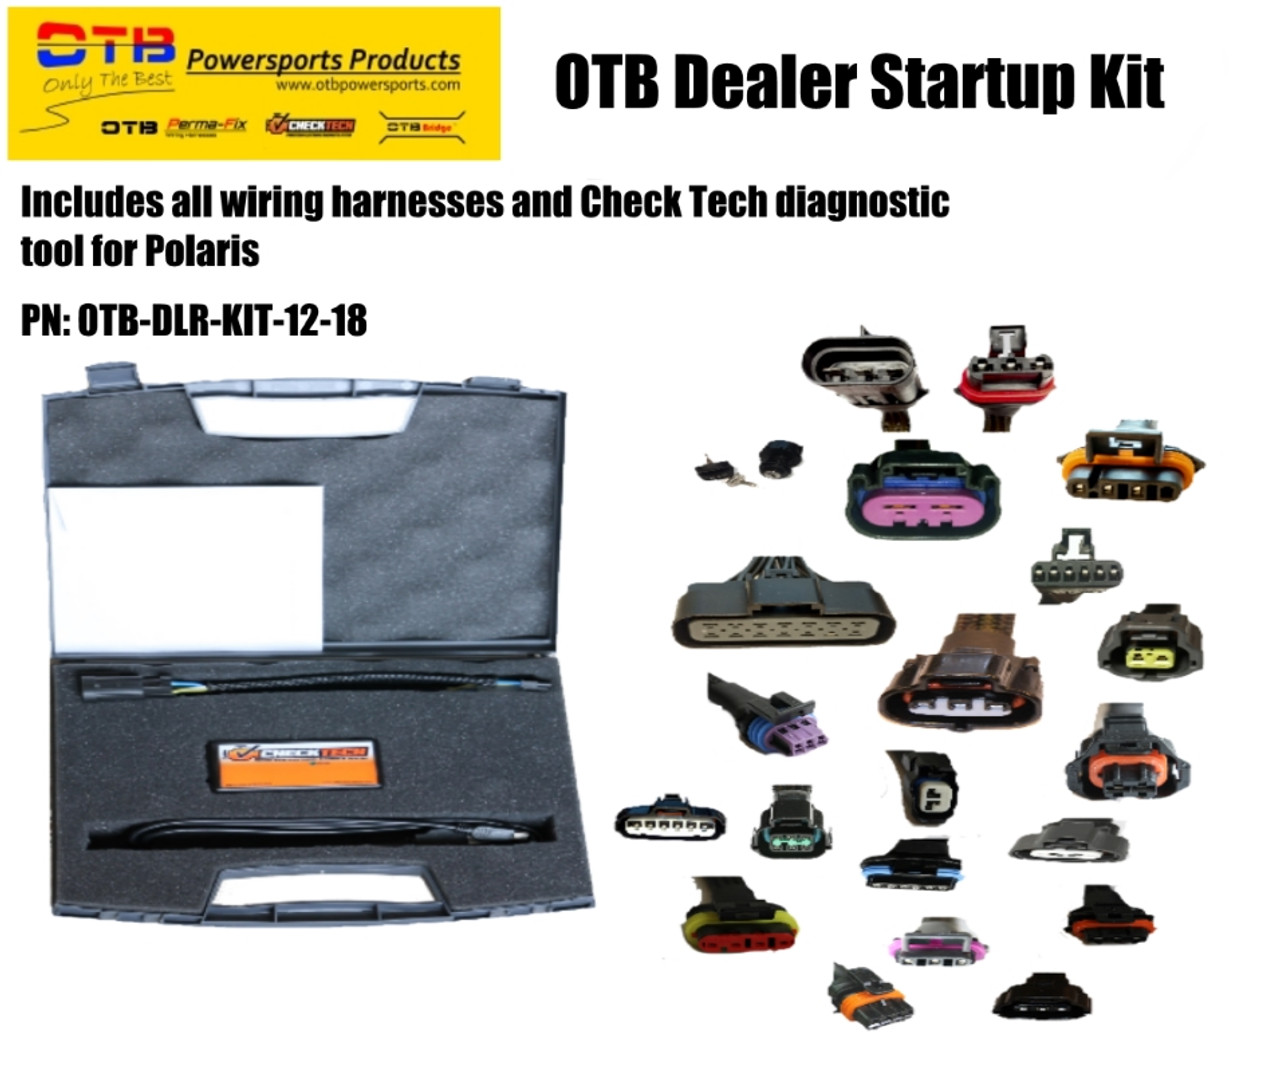 otb powersports dealer kit